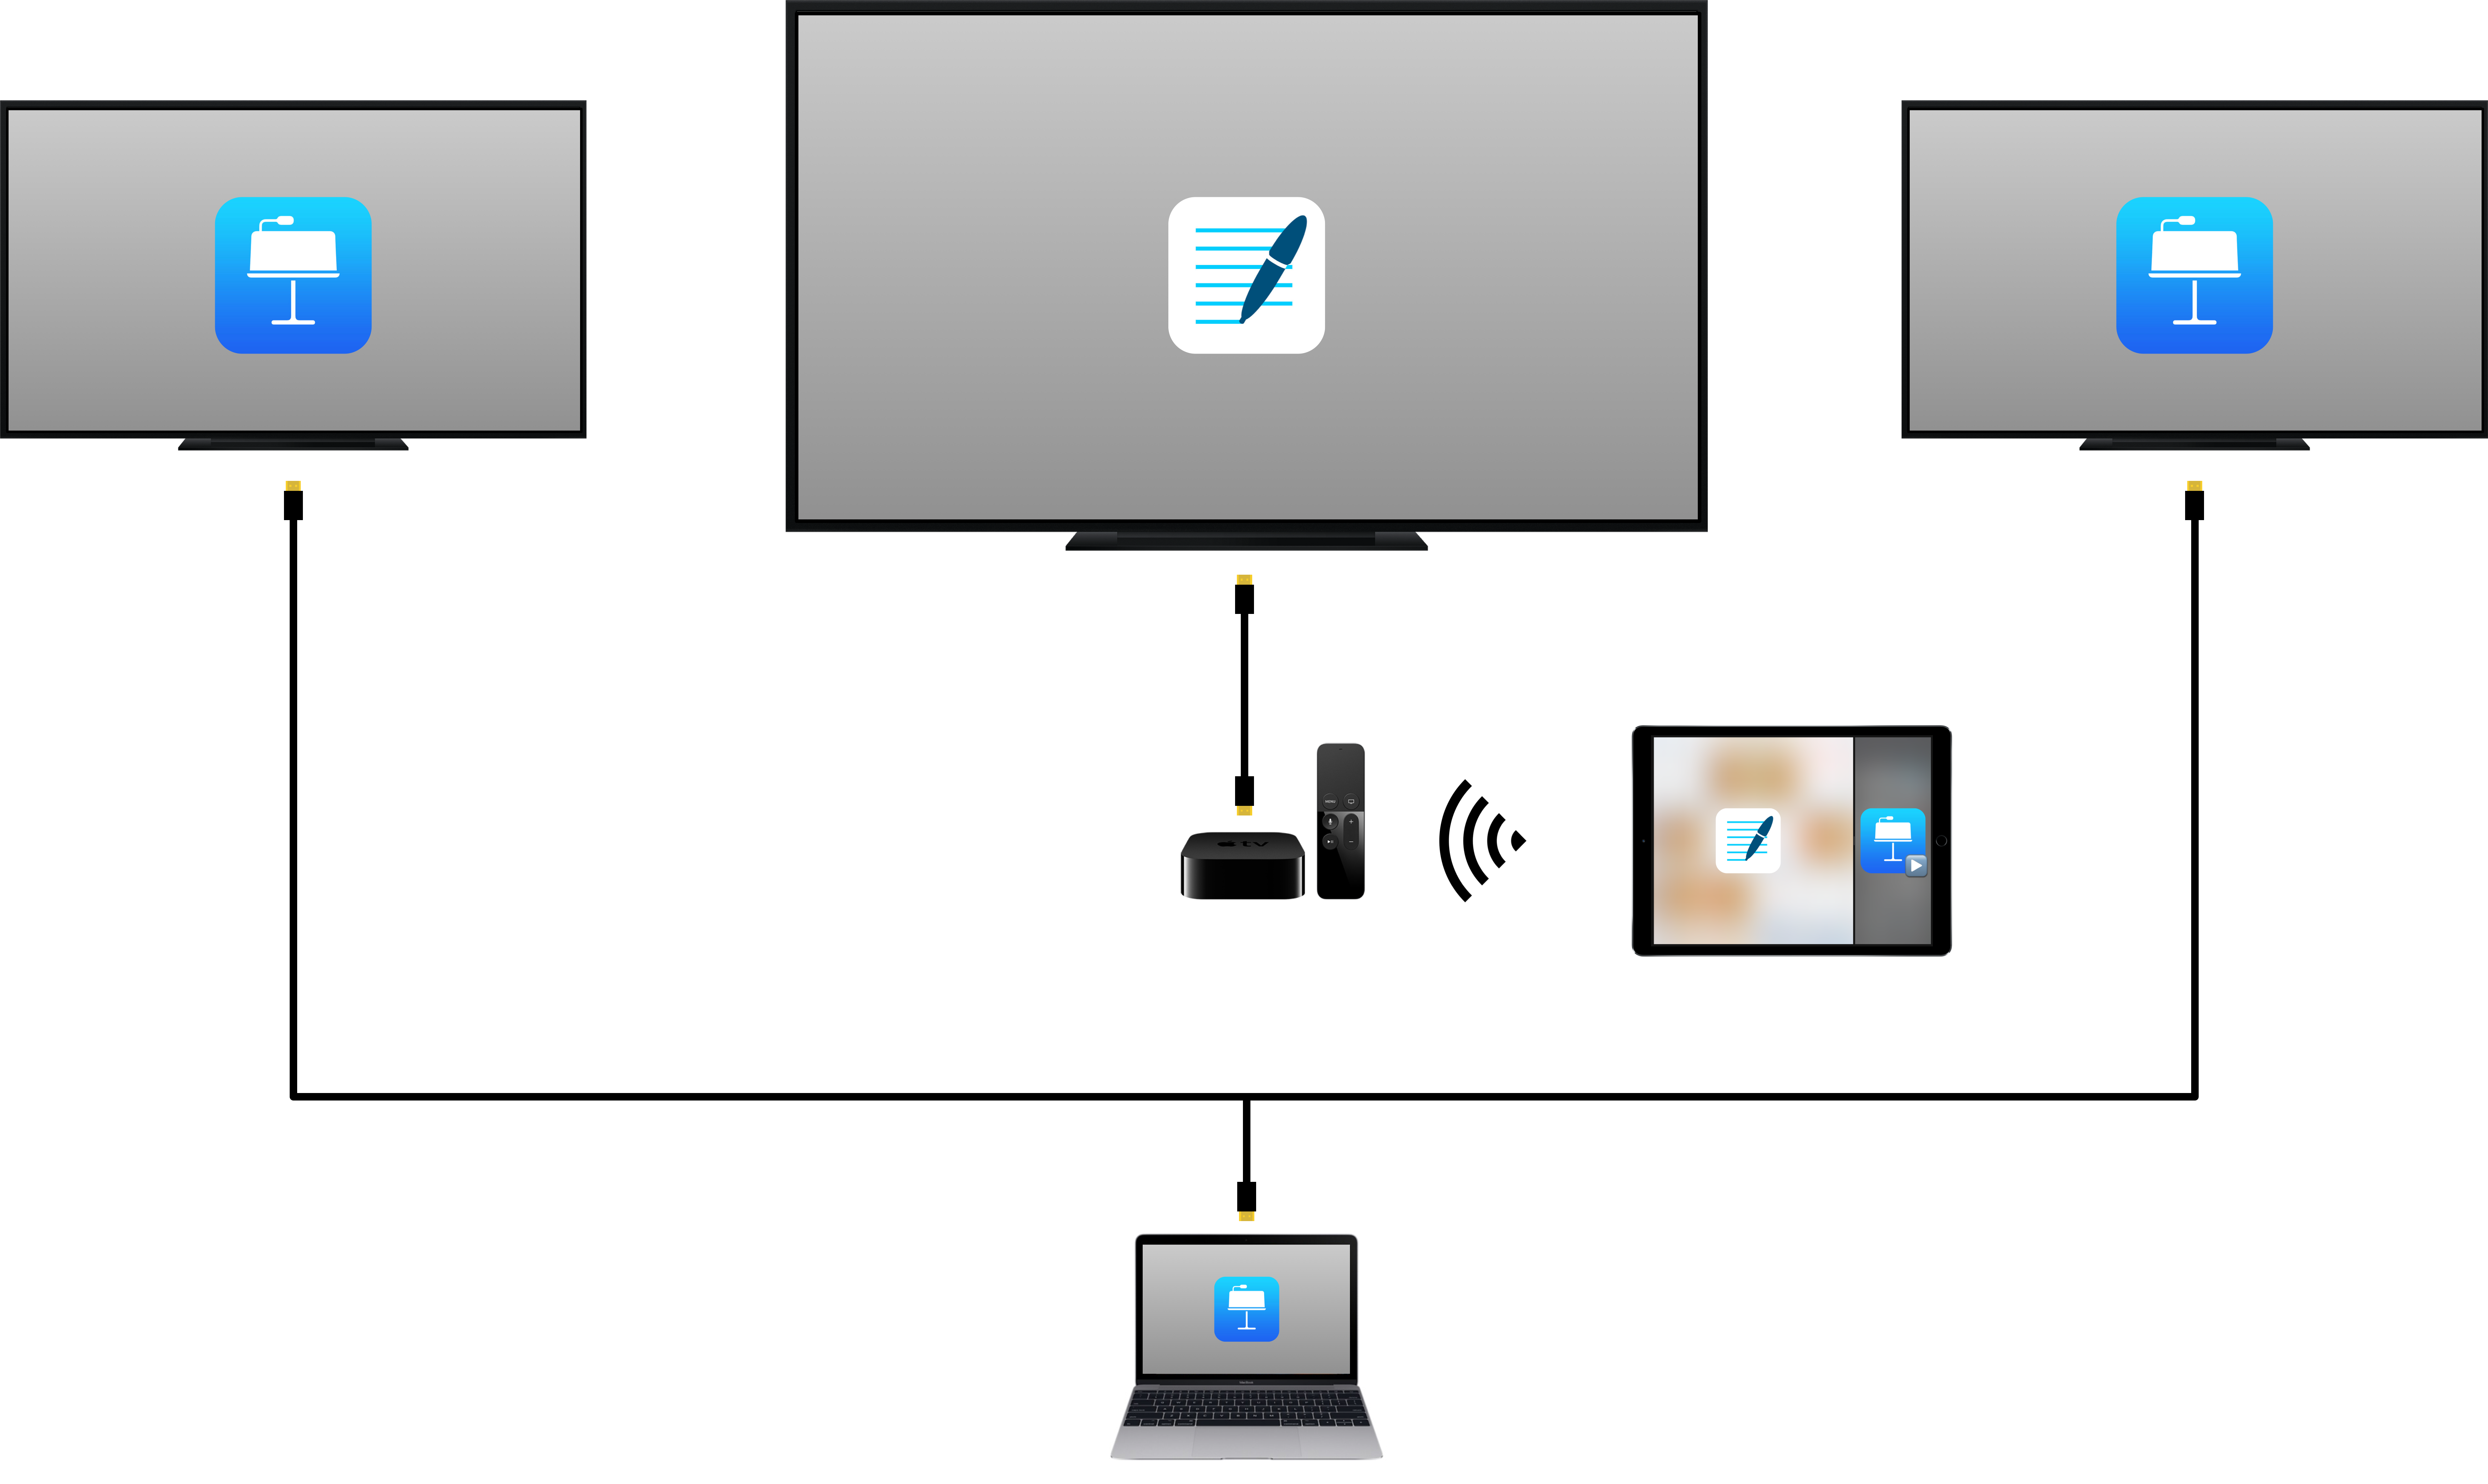 in short, i wirelessly project my ipad to the main screen via an apple tv,  and control my macbook (which is projecting the side slides) from my ipad  using